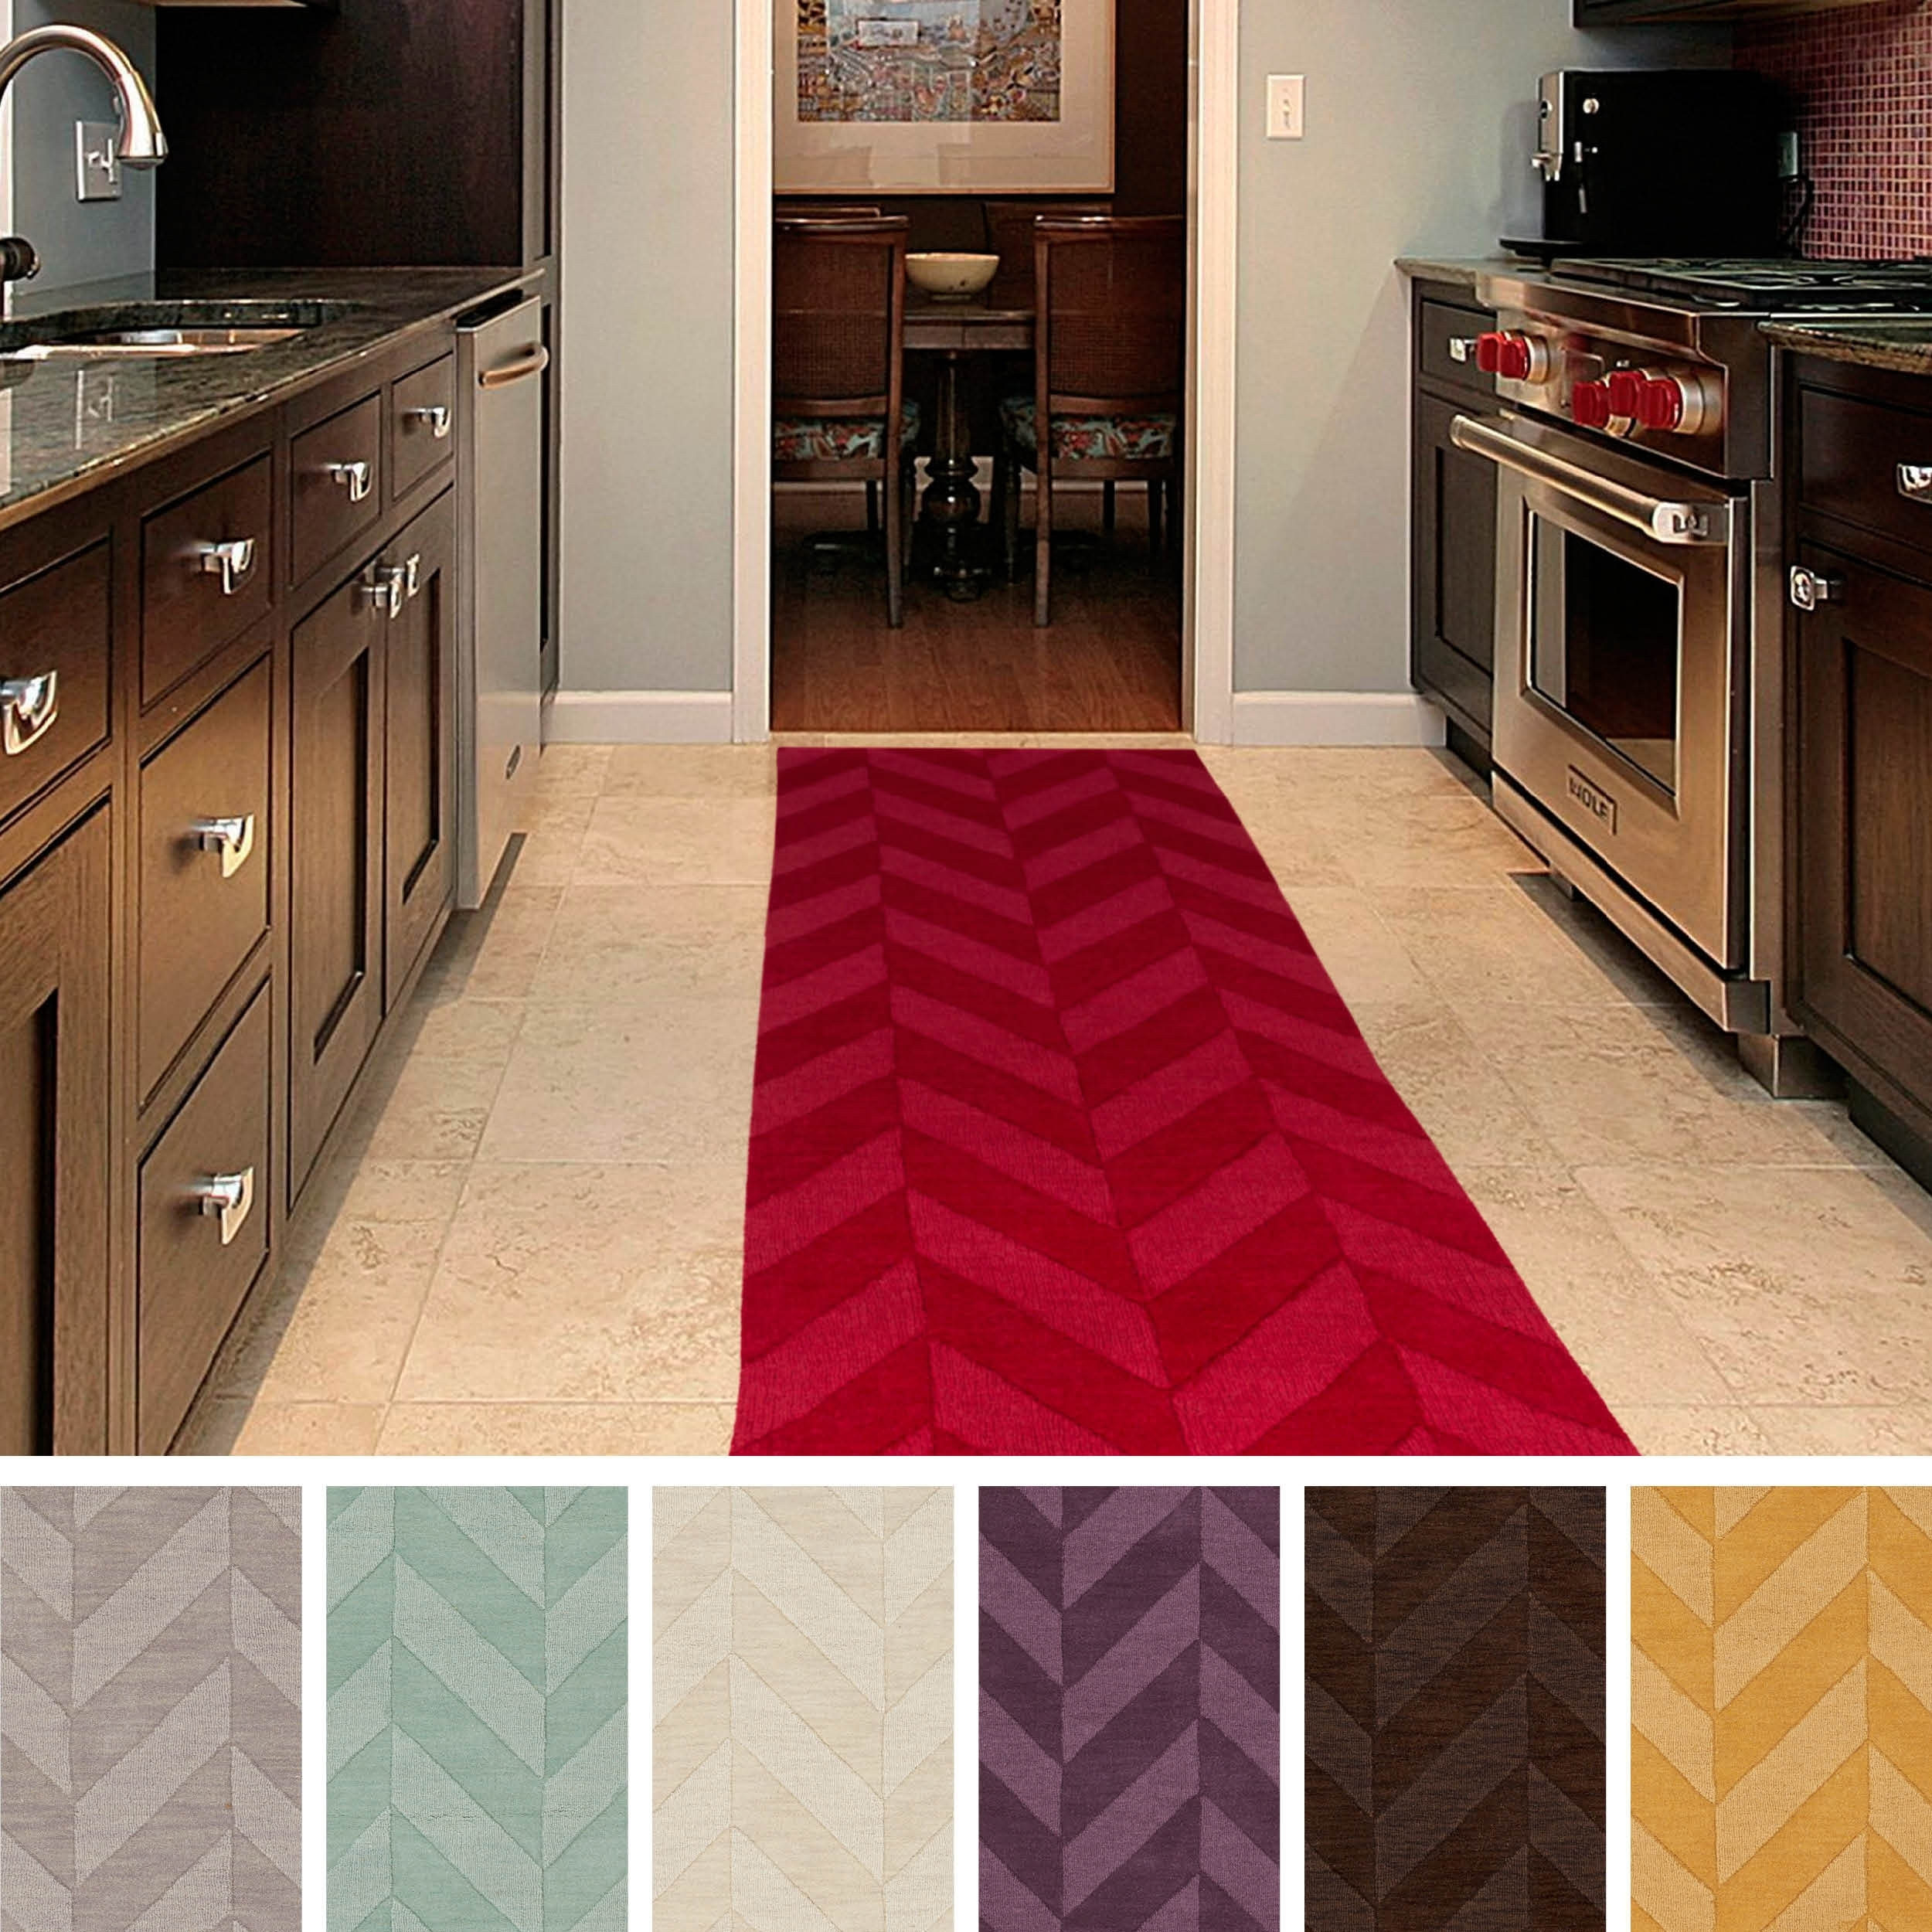 Floor How To Decorate Cool Flooring With Lowes Area Rugs 8×10 Pertaining To Red Runner Rugs For Hallway (#8 of 20)